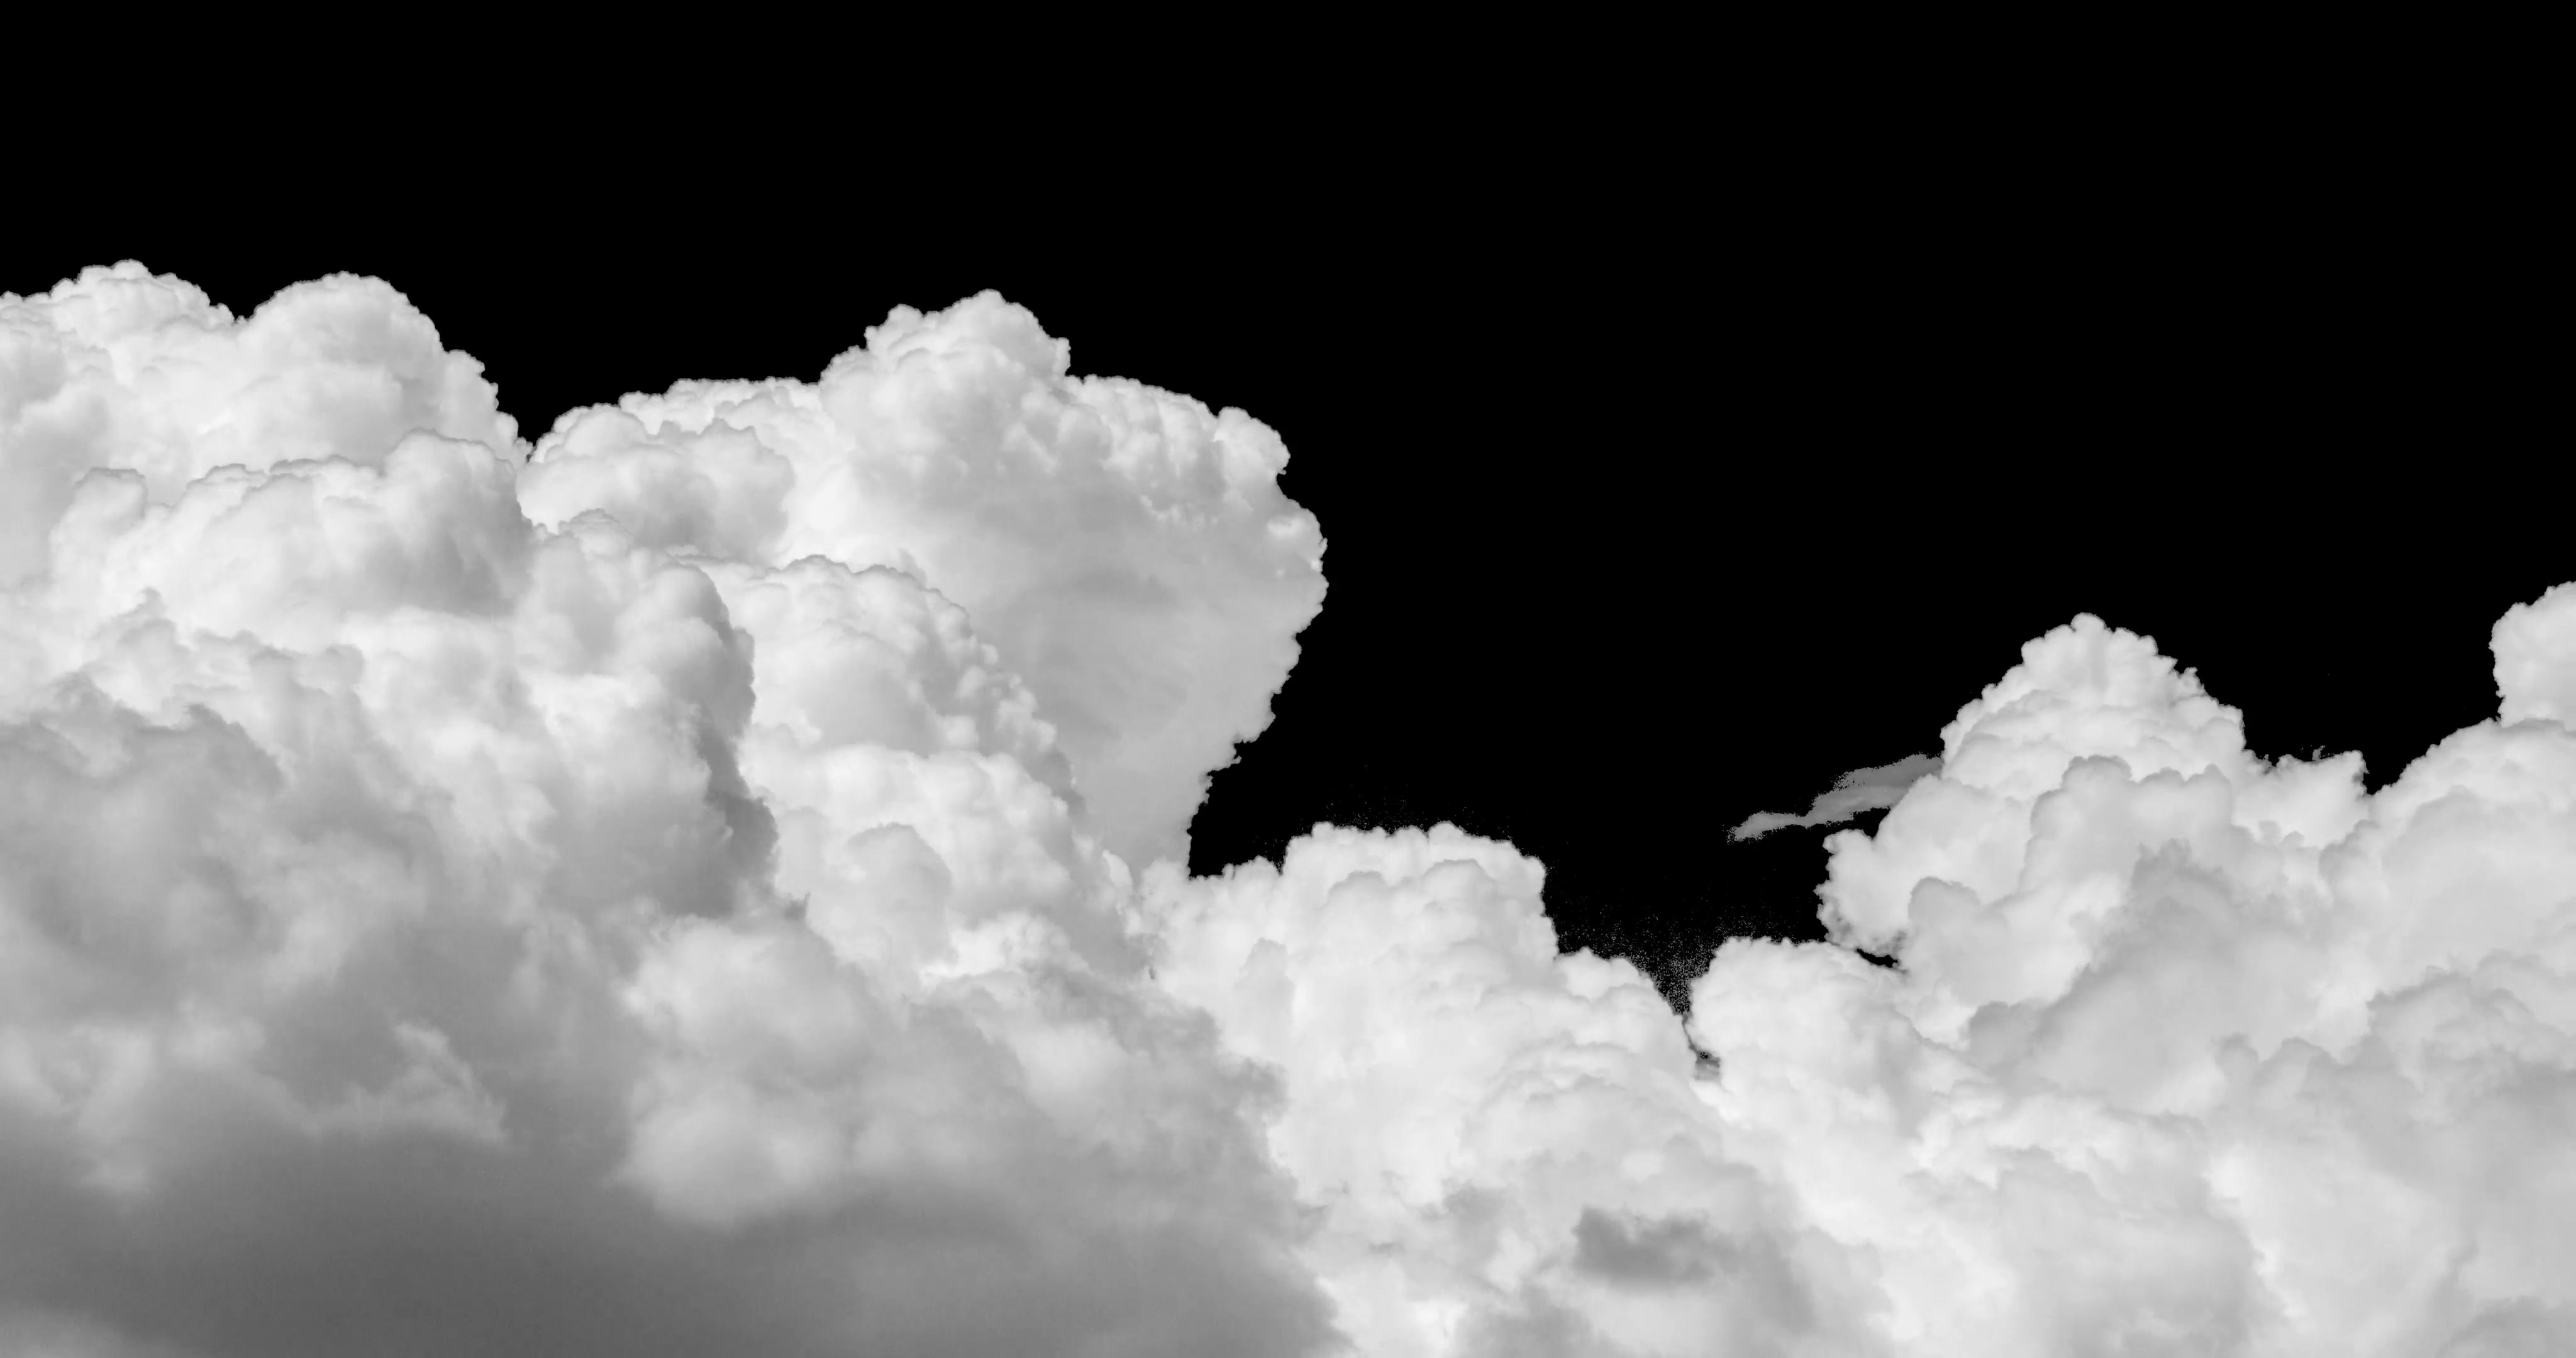 Clouds PNG HD Images Transparent Clouds HD Images.PNG Images.